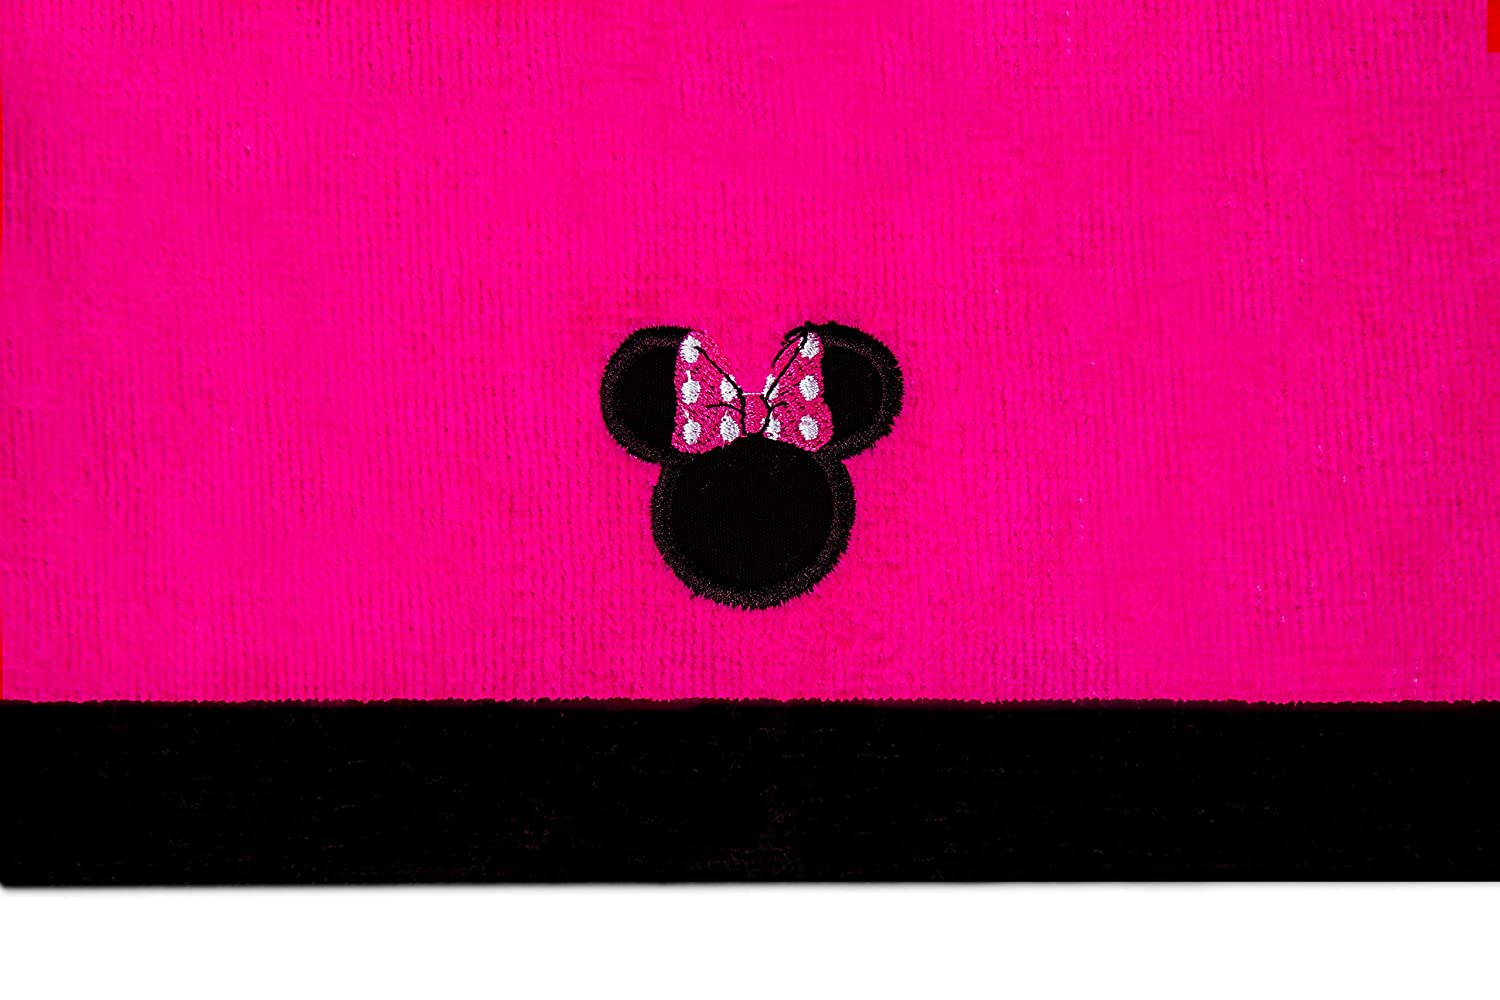 Jay Franco /& Sons Disneys Minnie Mouse Super Absorbent and Soft Fingertip Towel 100/% Cotton 11x18 Pack of 3